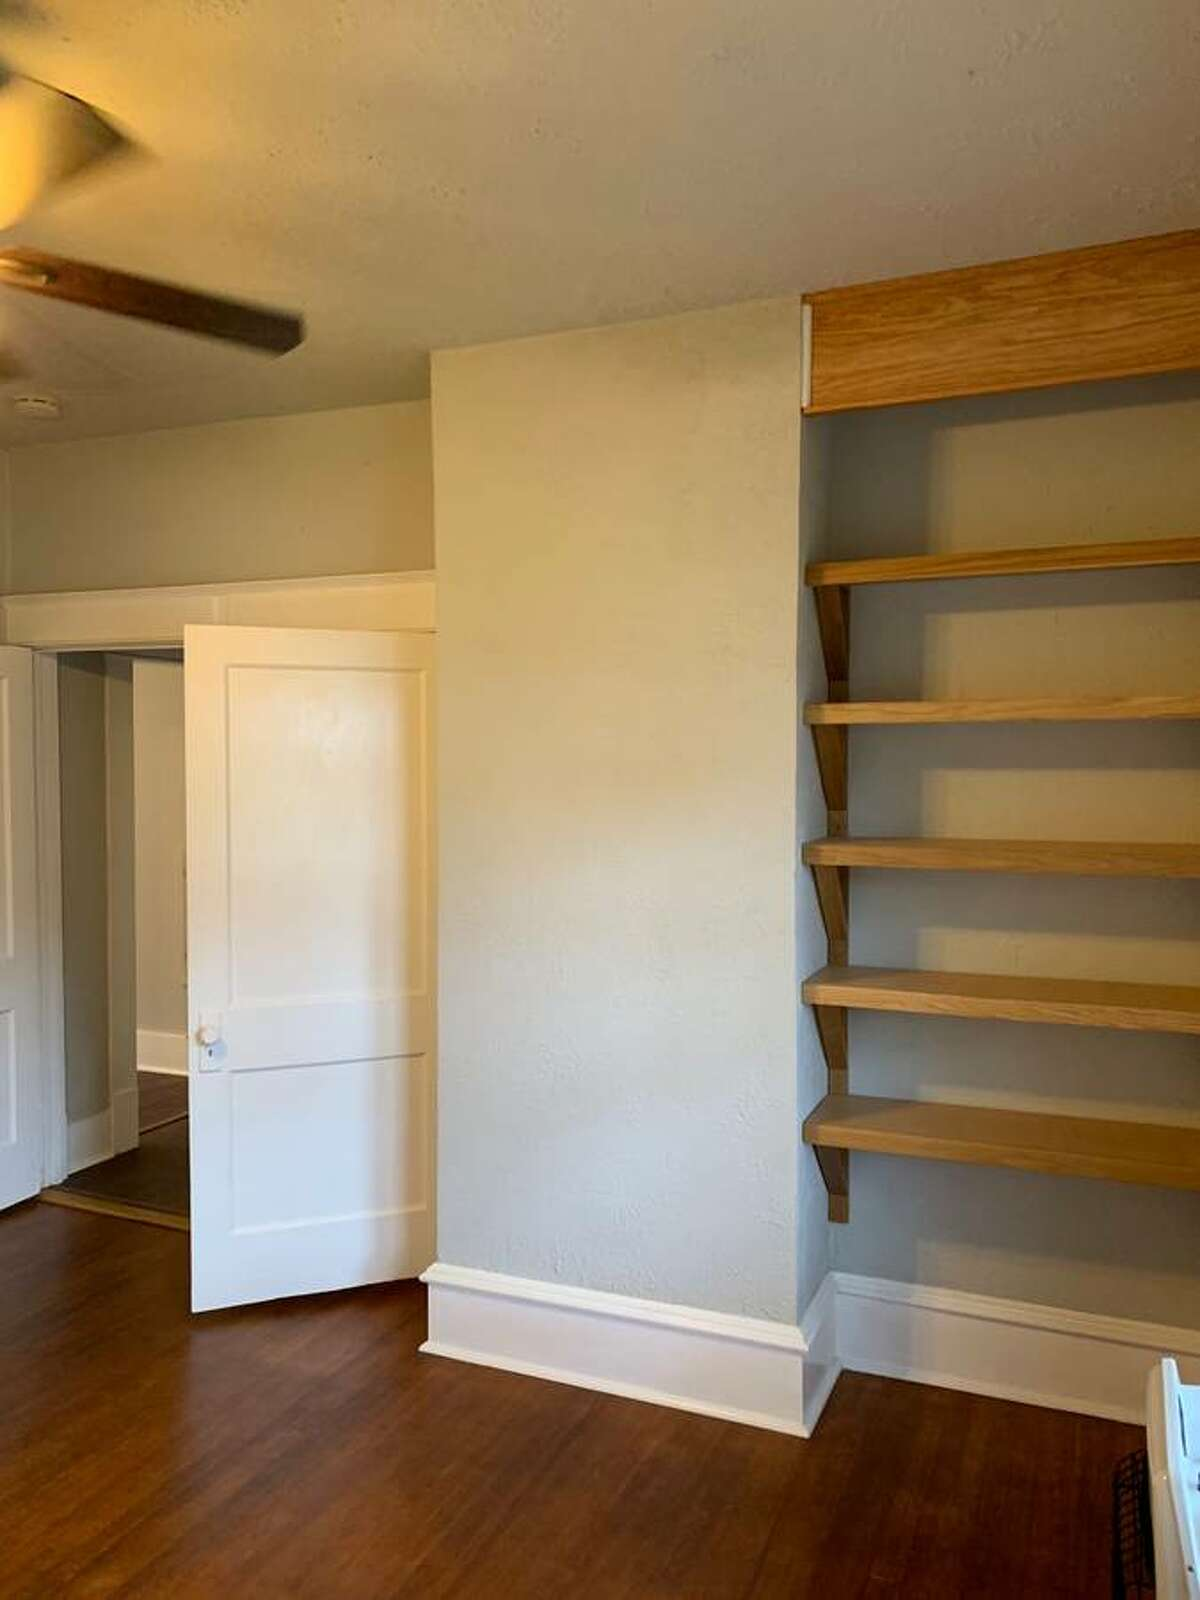 Who doesn't love shelves?  Mostly shelves that are built into nooks like this.